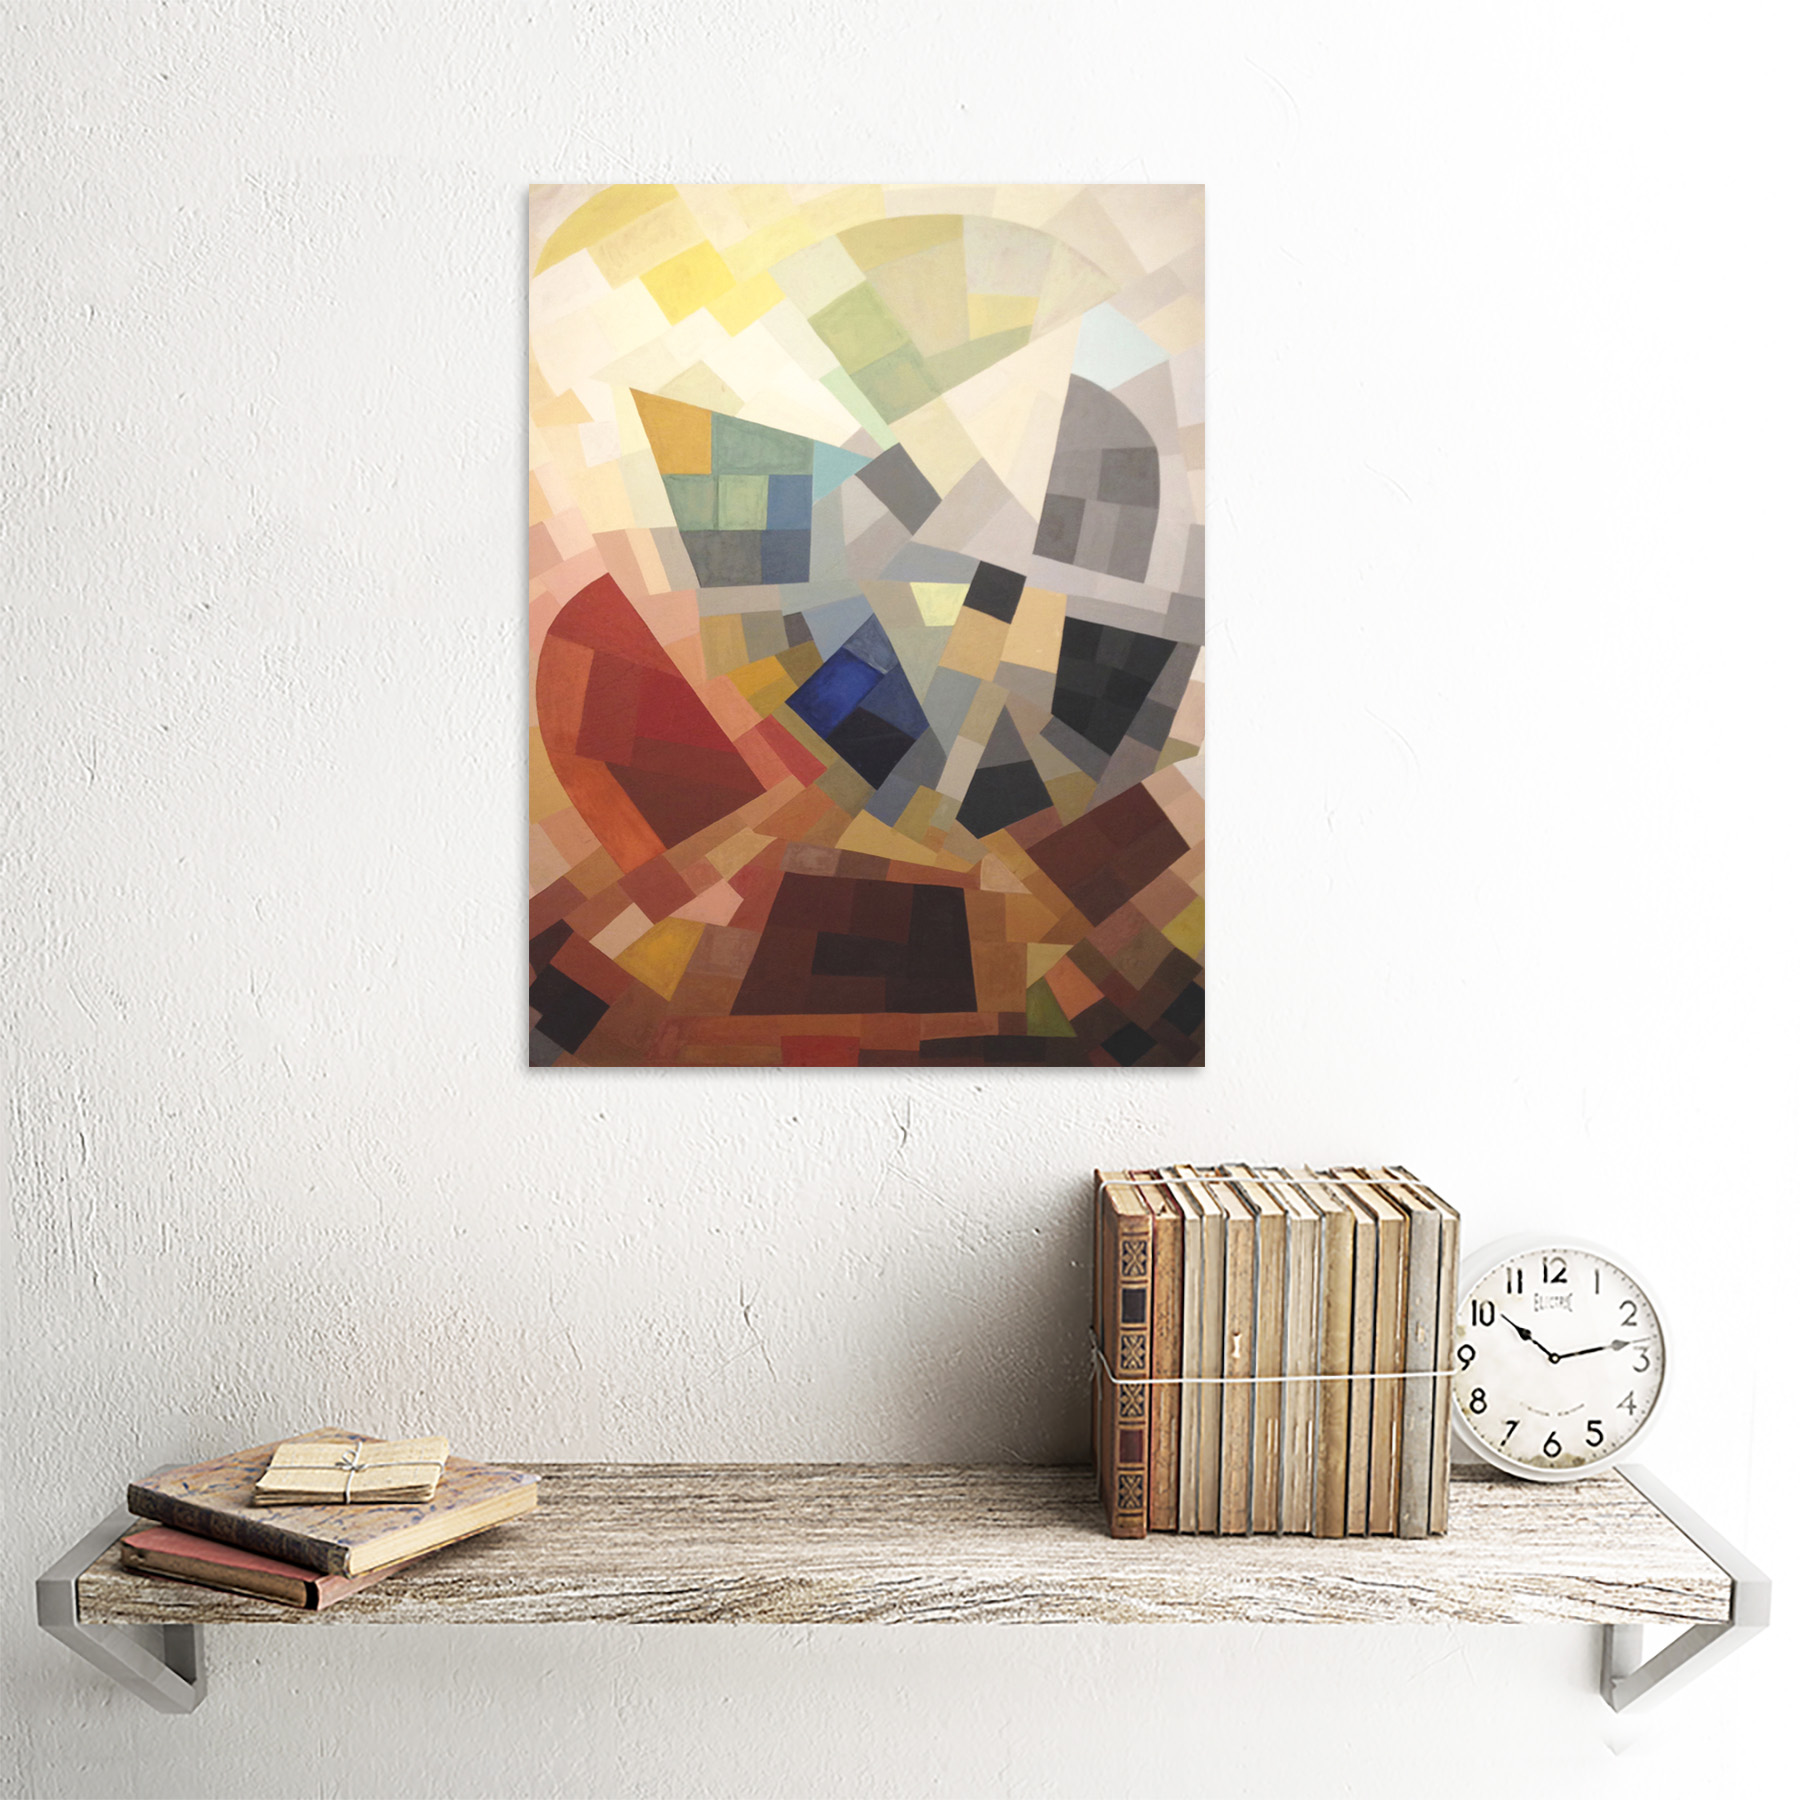 Freundlich-Abstract-Composition-Painting-Art-Print-Framed-12x16 thumbnail 23